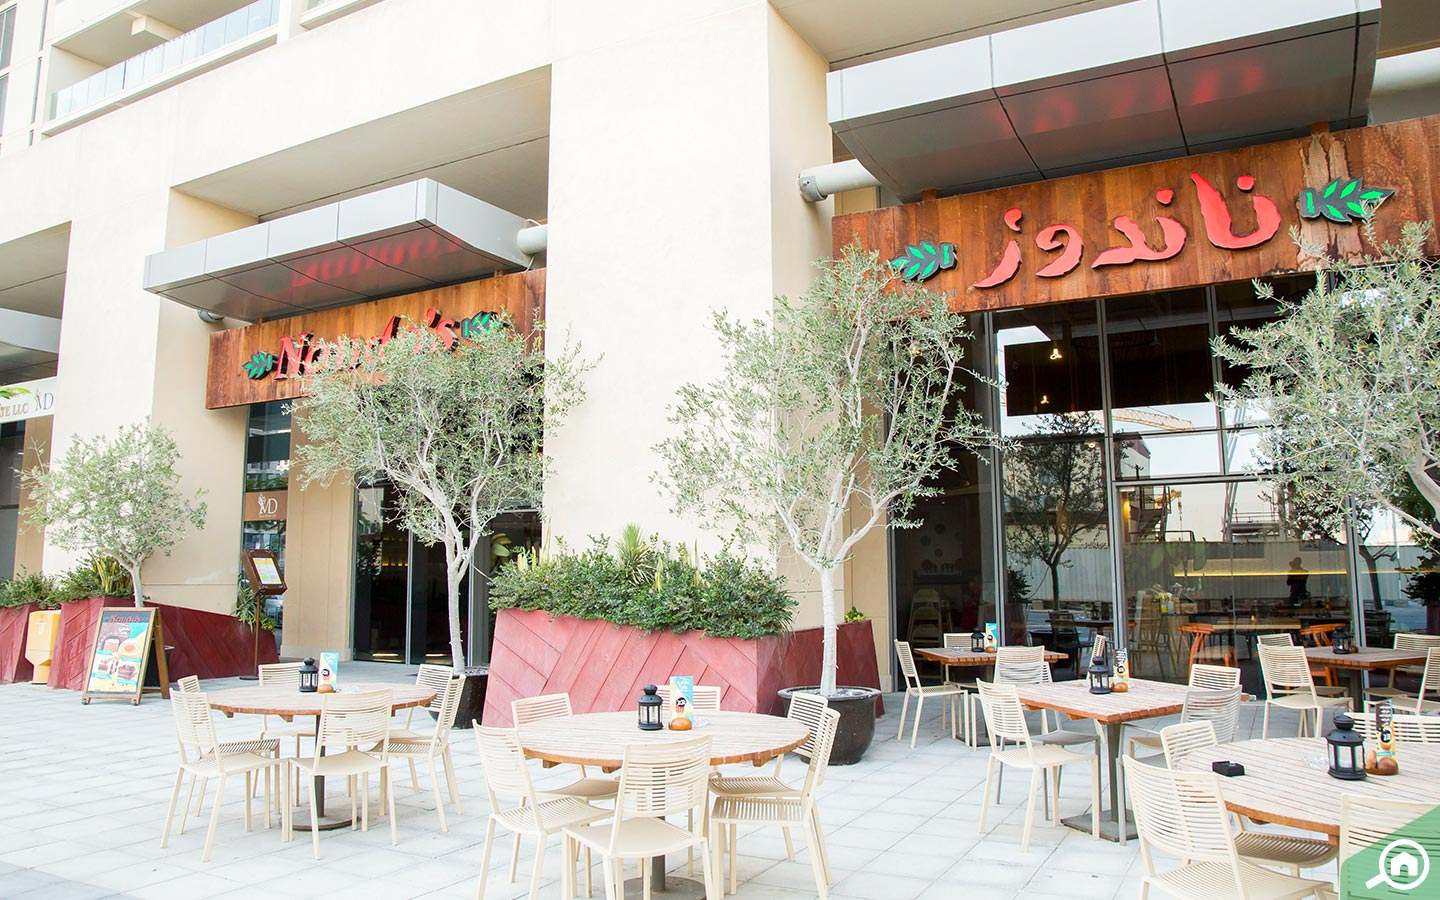 Restaurants in Al Raha Abu Dhabi